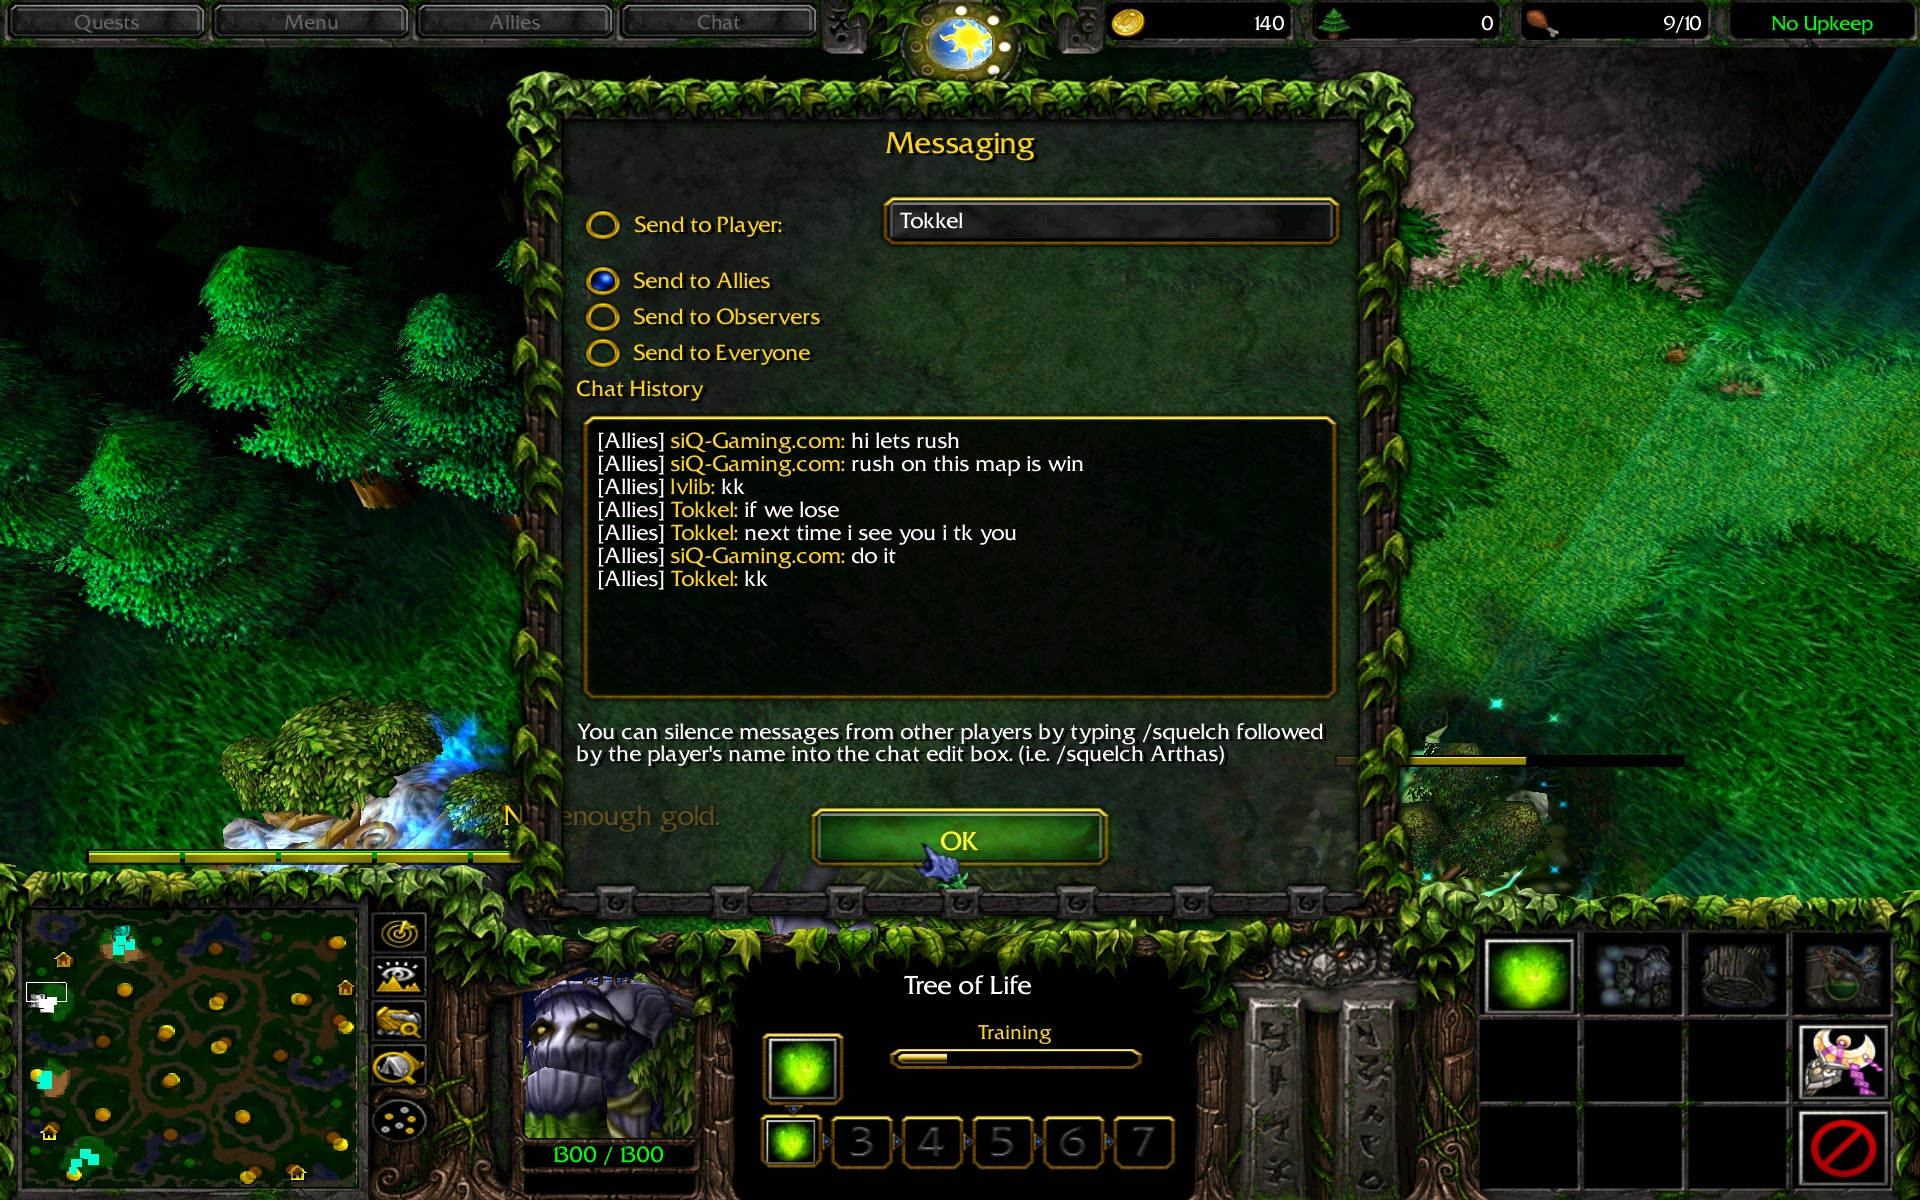 warcraft-3-chat-teamkill-random-team